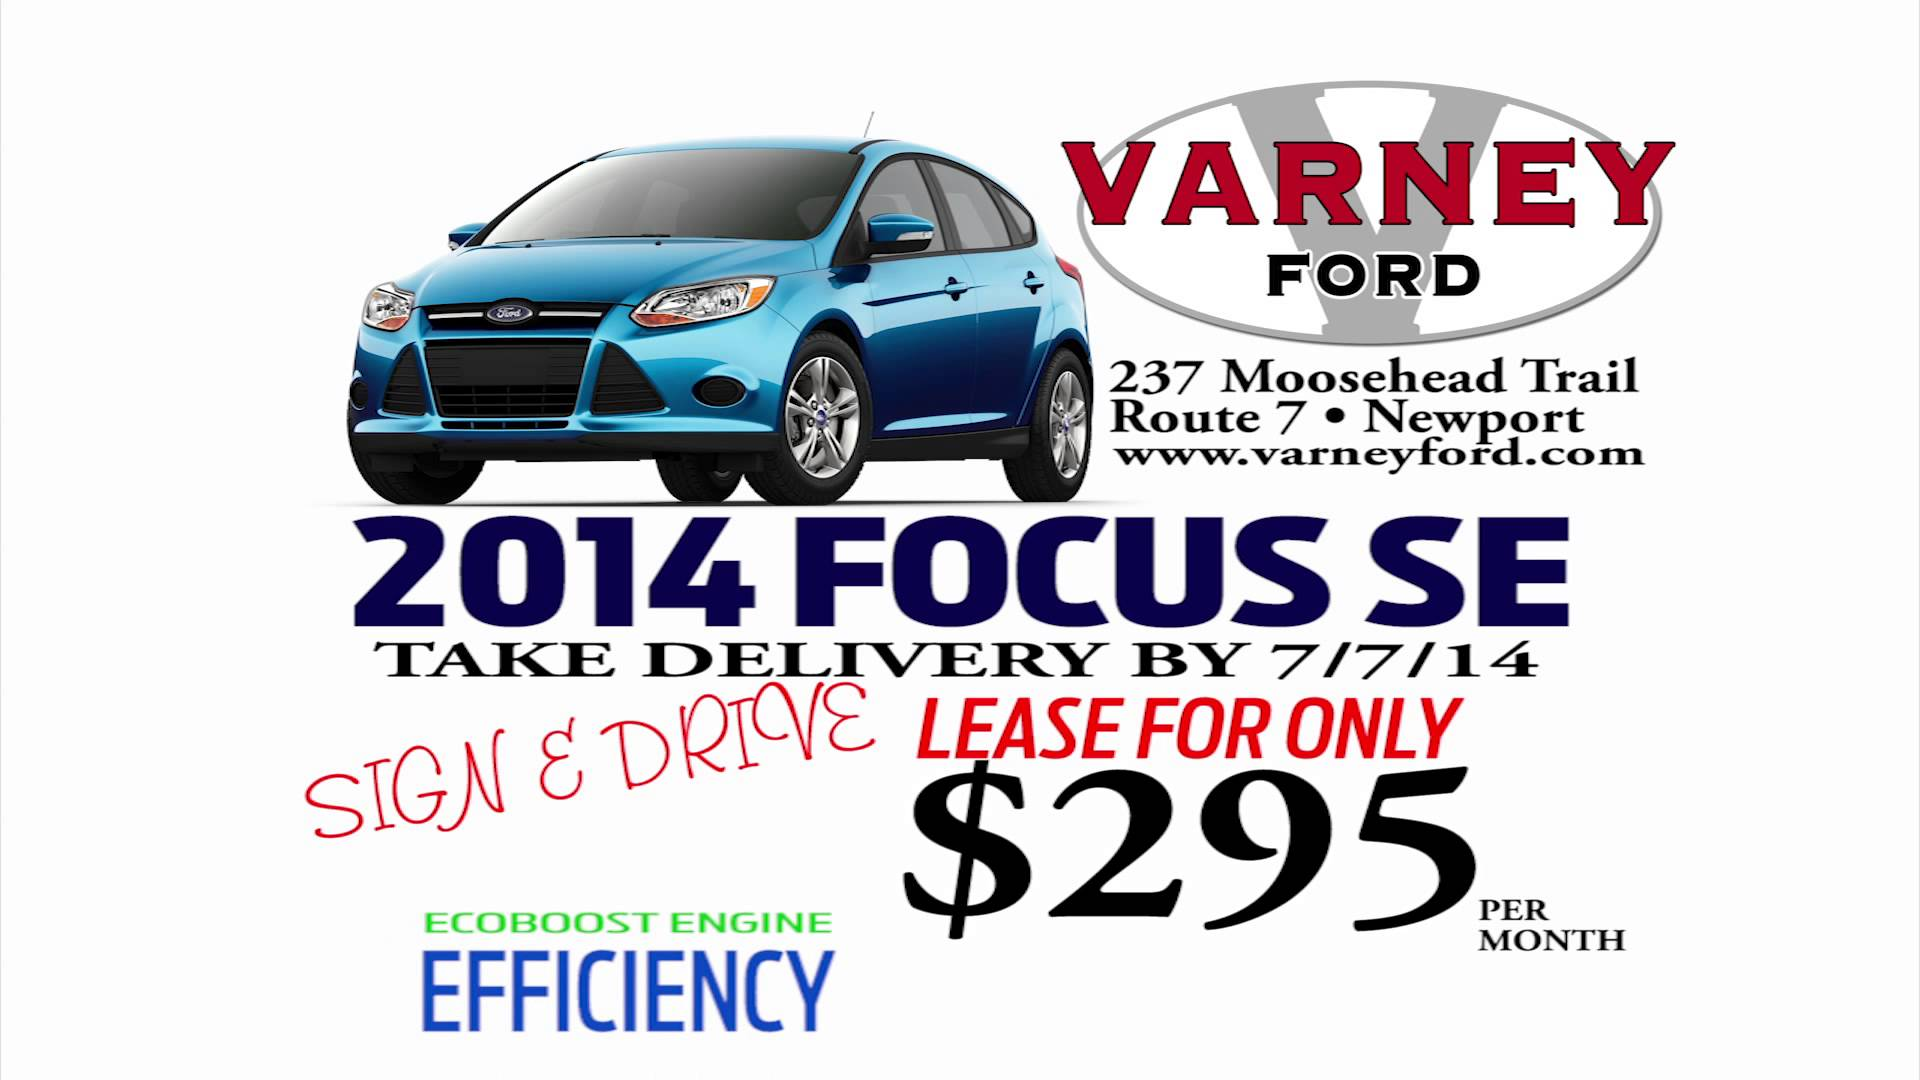 VARNEY FORD FOCUS 614 RMVP201B HD